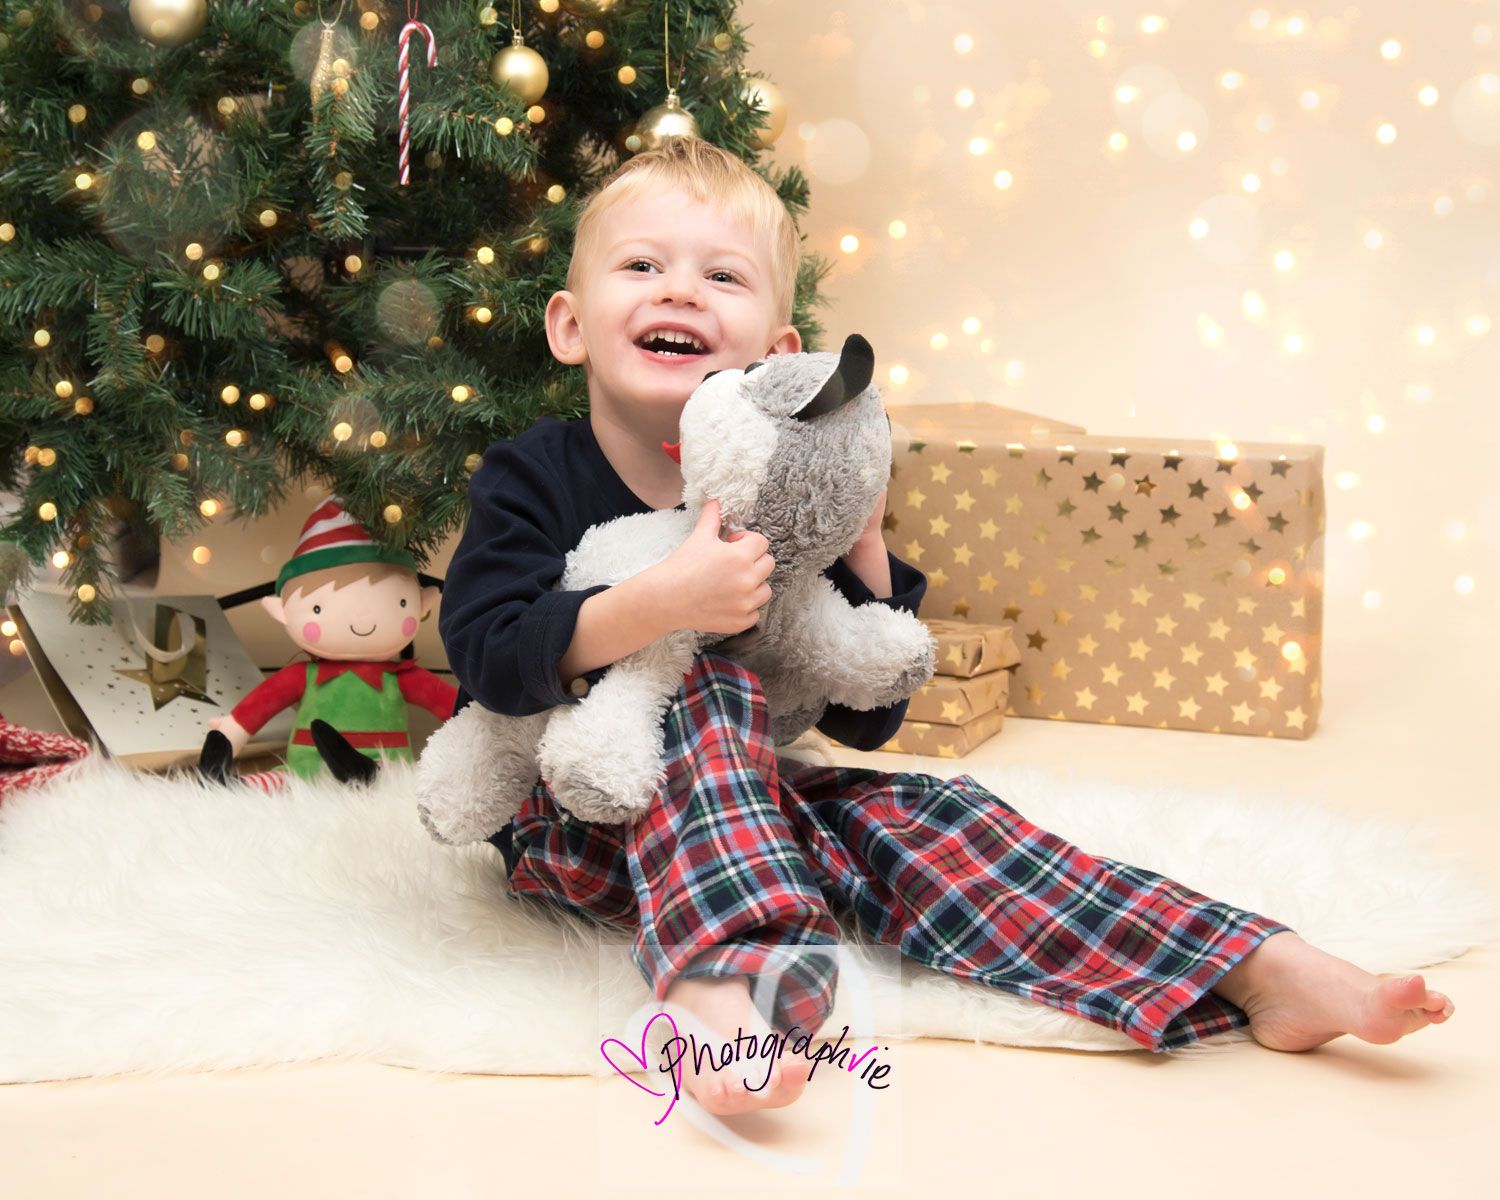 christmas photoshoot family child holding cuddly toy sentimental photo with christmas backdrop